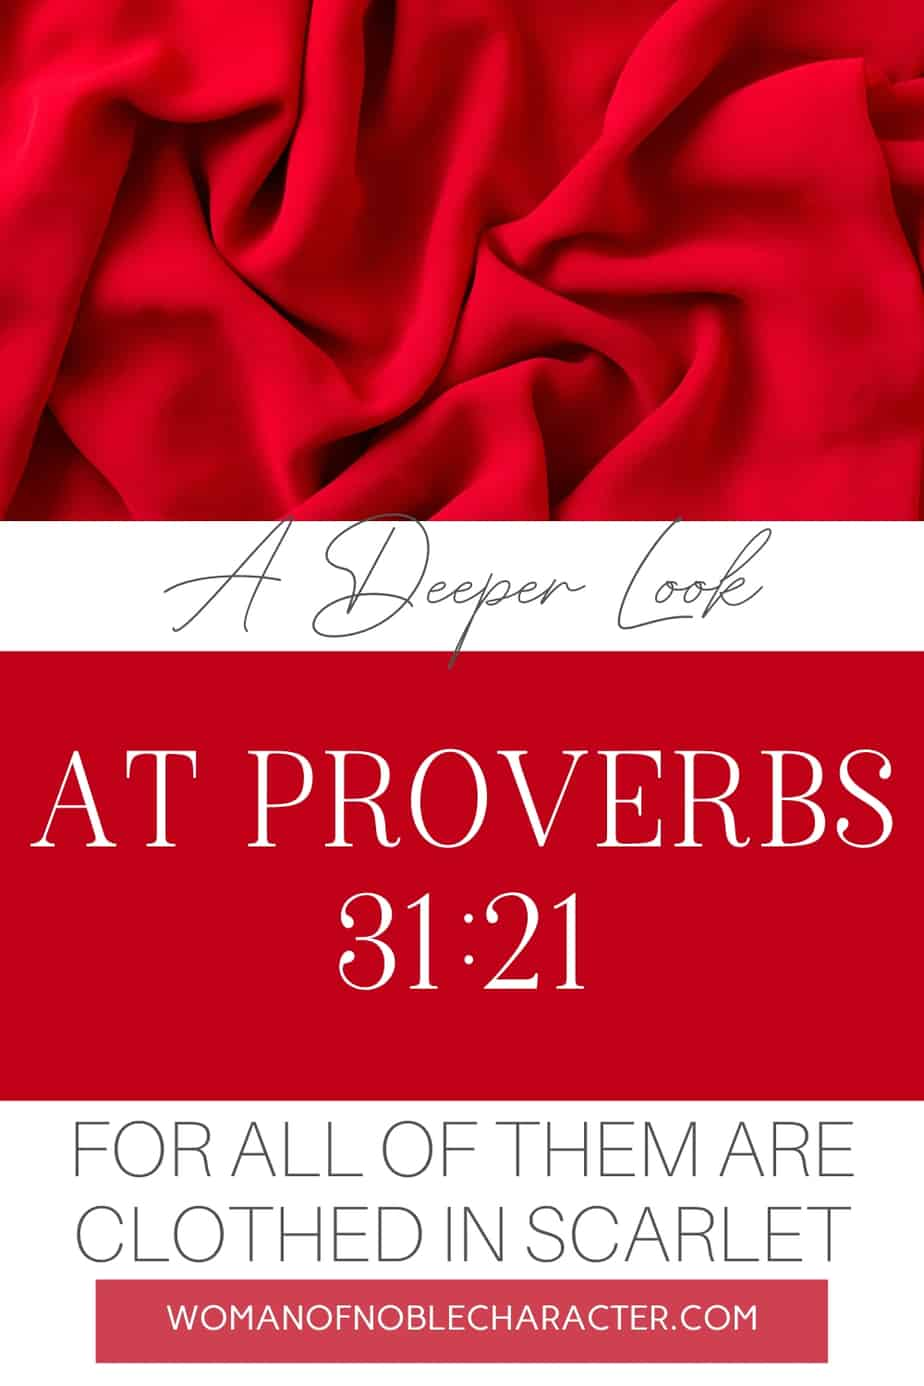 An image of red fabric bunched up and text that says A Deeper Look at Proverbs 31:21 - All of Them Are Clothed in Scarlet